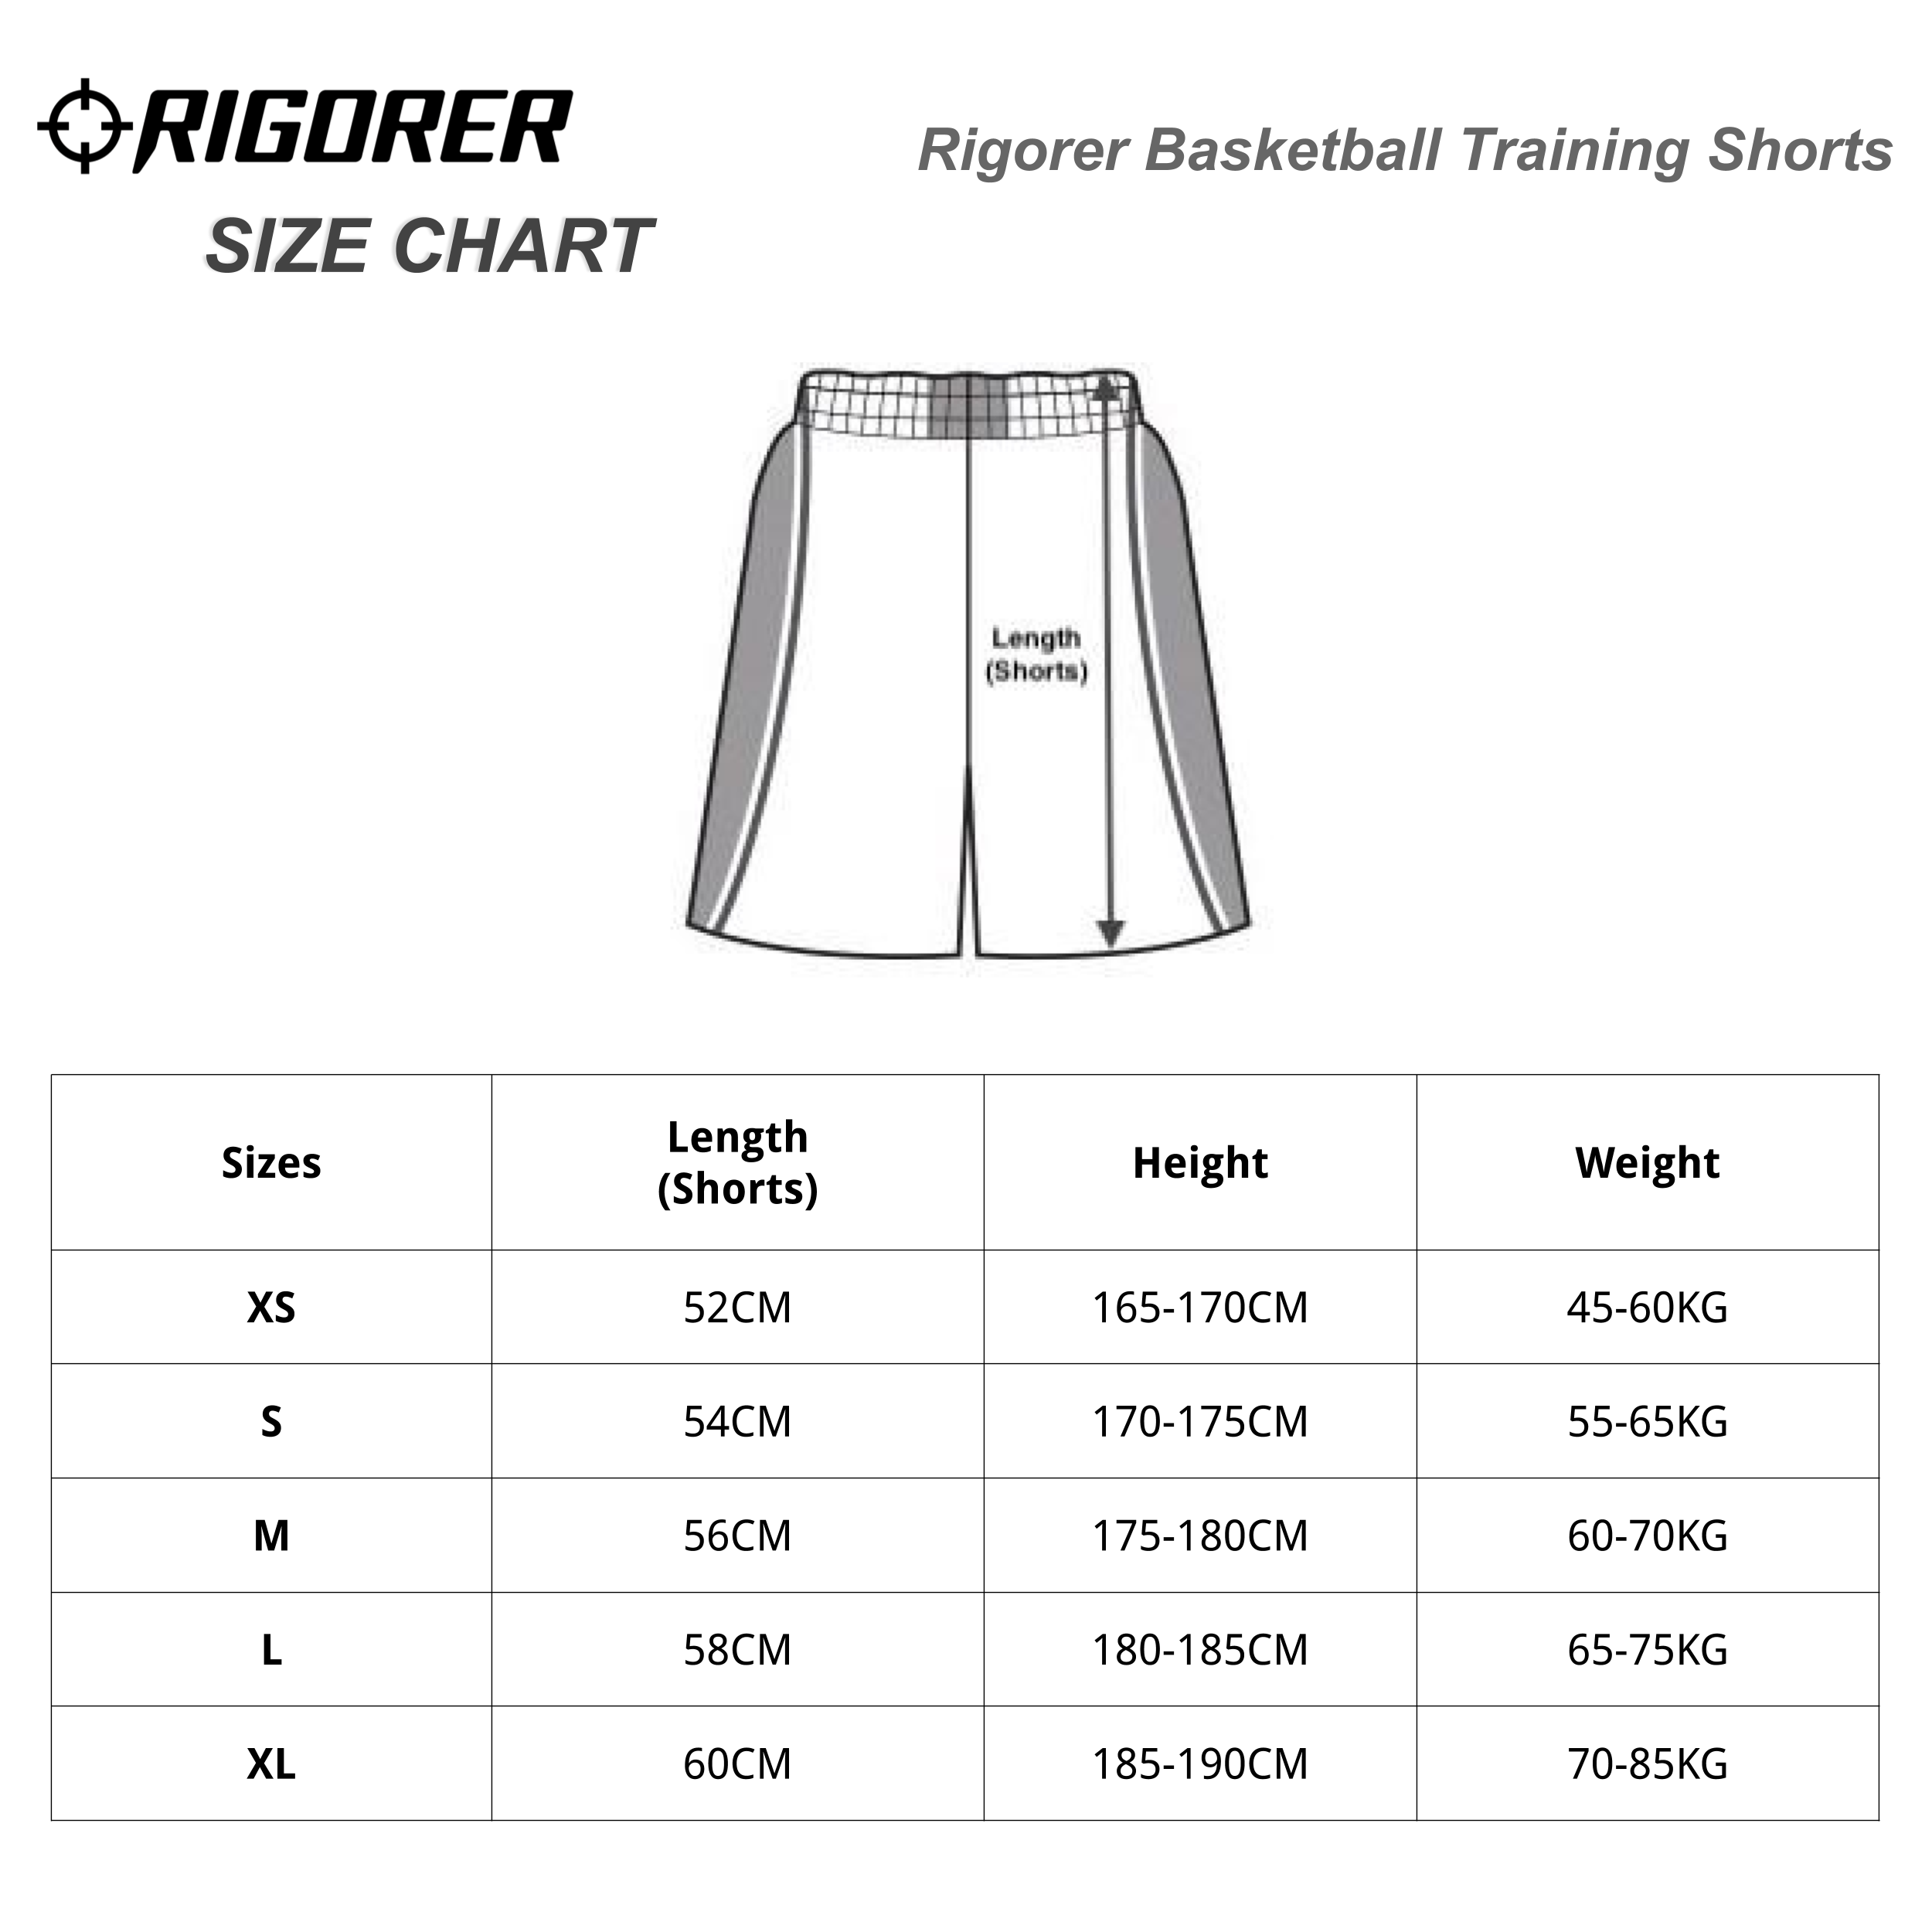 Rigorer Basketball Training Shorts Sizing Chart